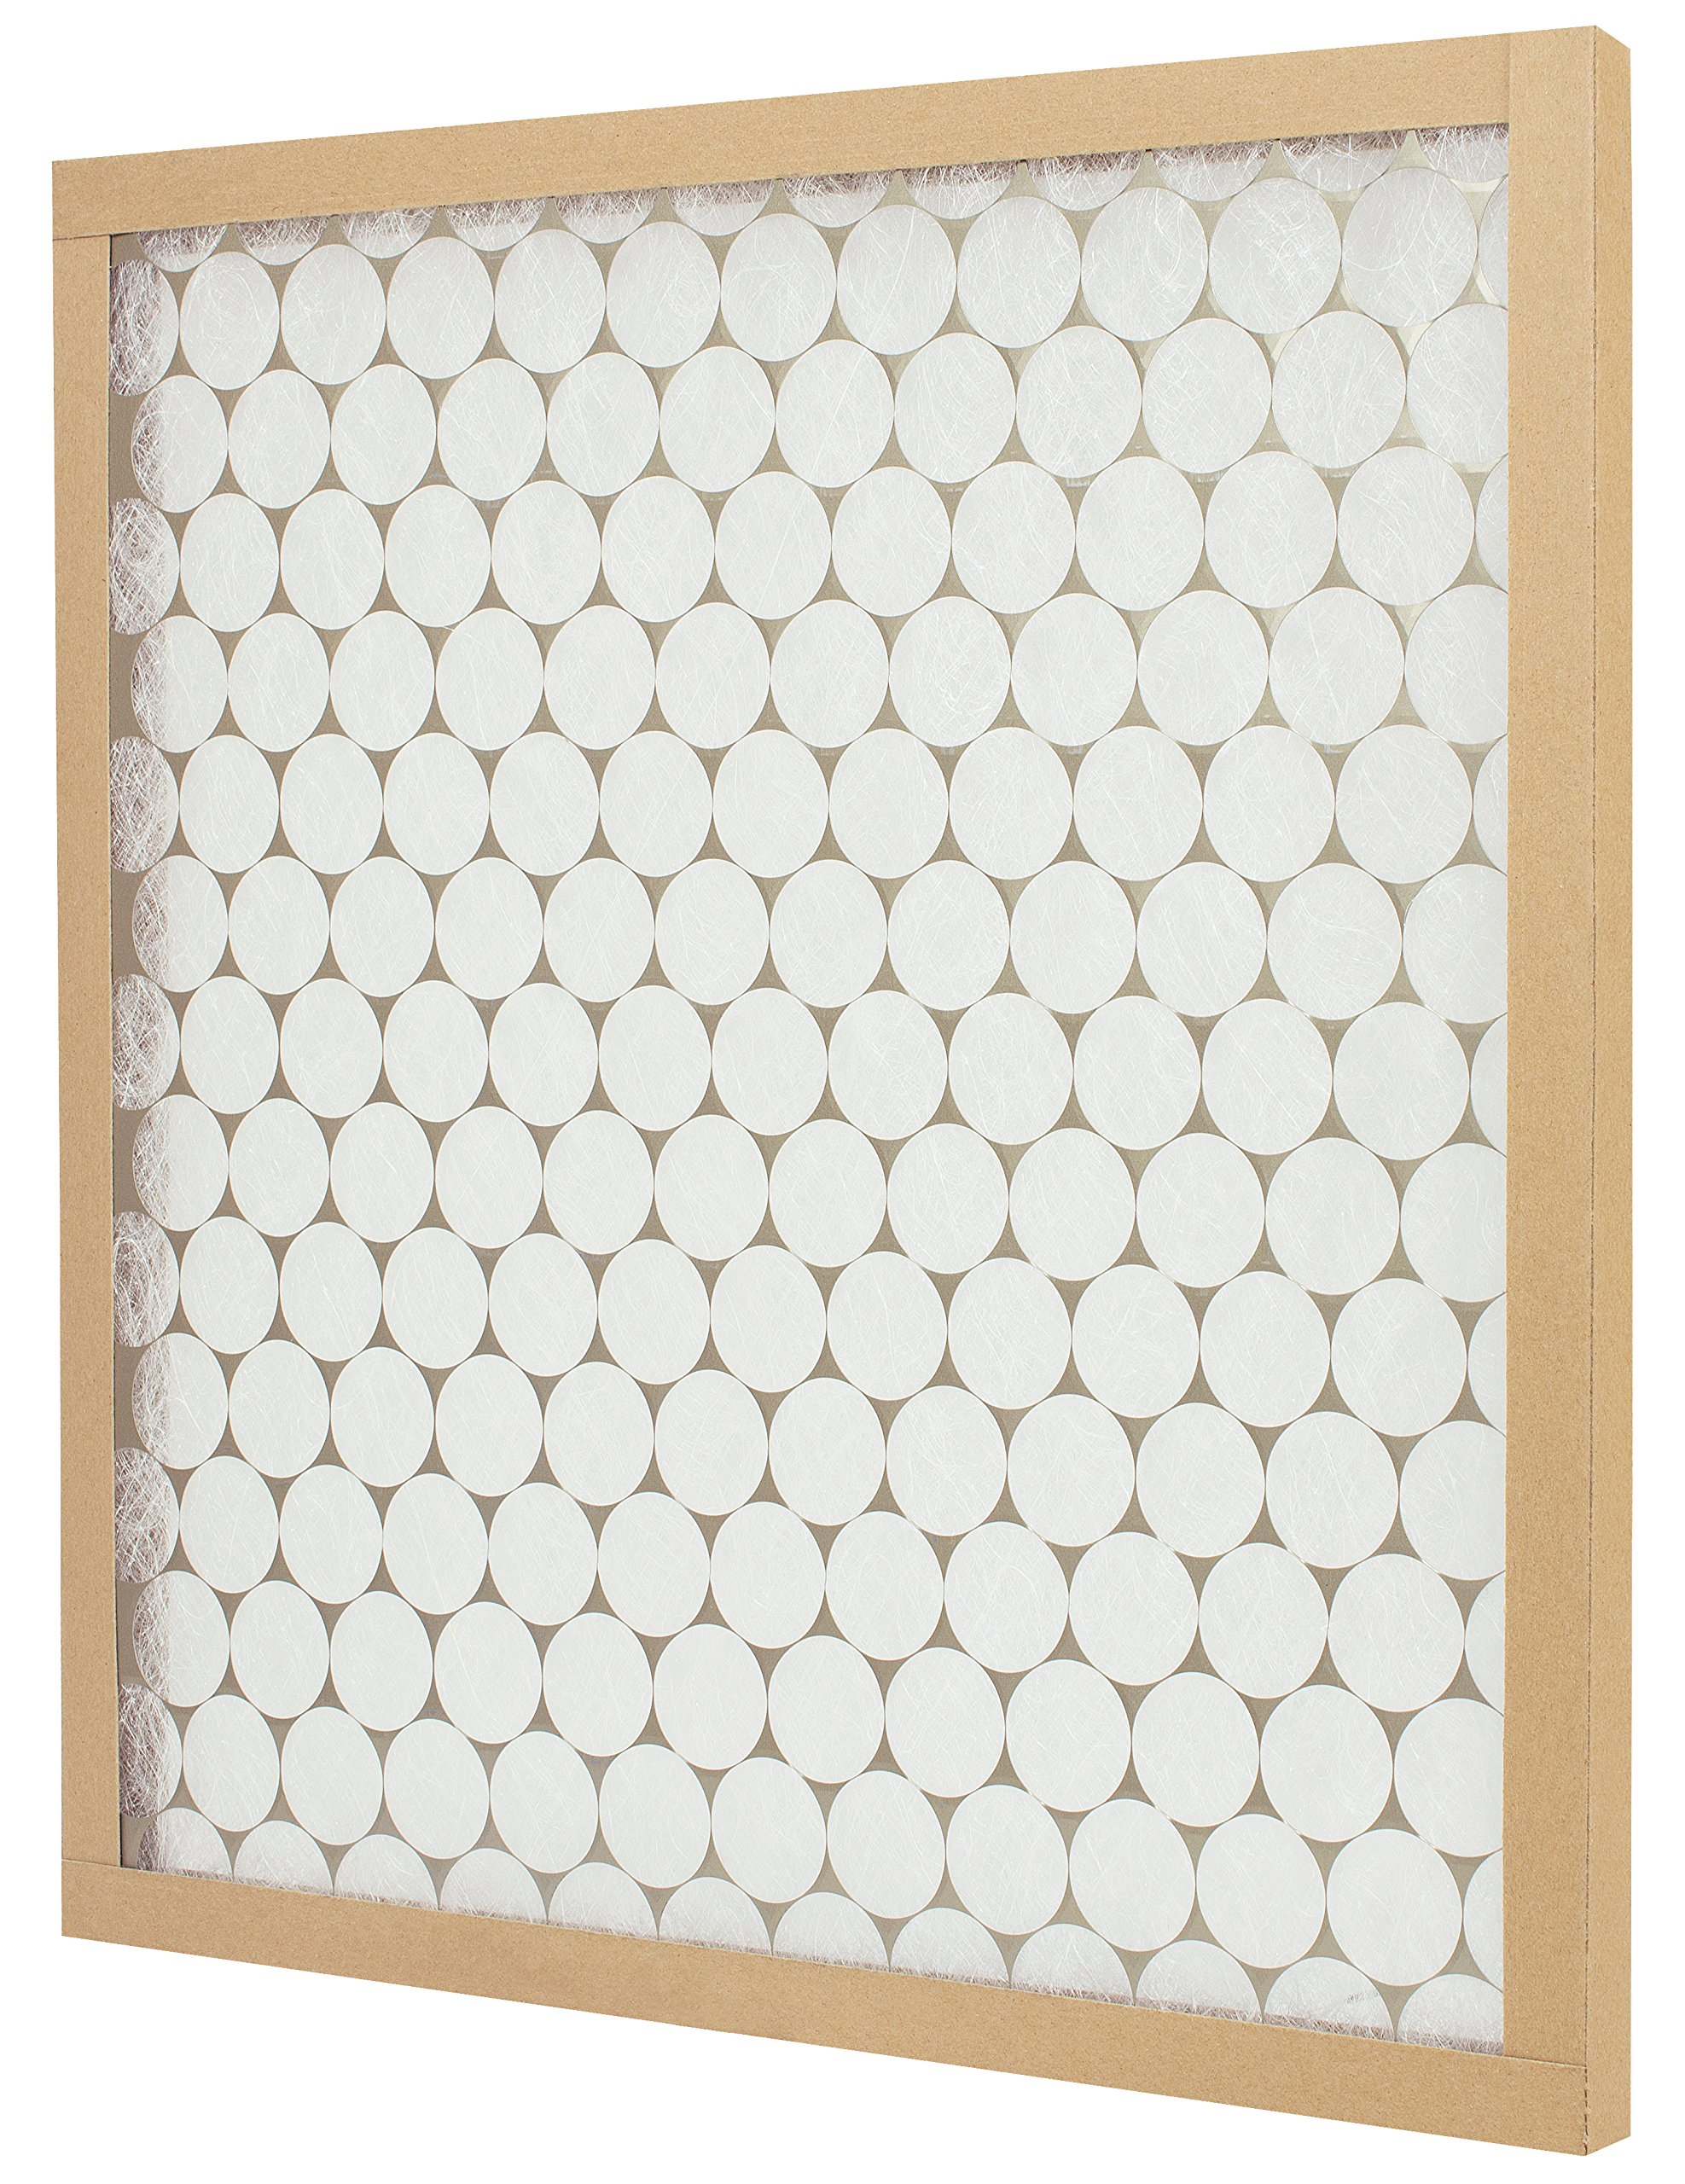 Flanders PrecisionAire 10155.01202 E-Z Flow Air Filter, MERV 4, 20 x 20 x 1-Inch, 12-Pack by Flanders